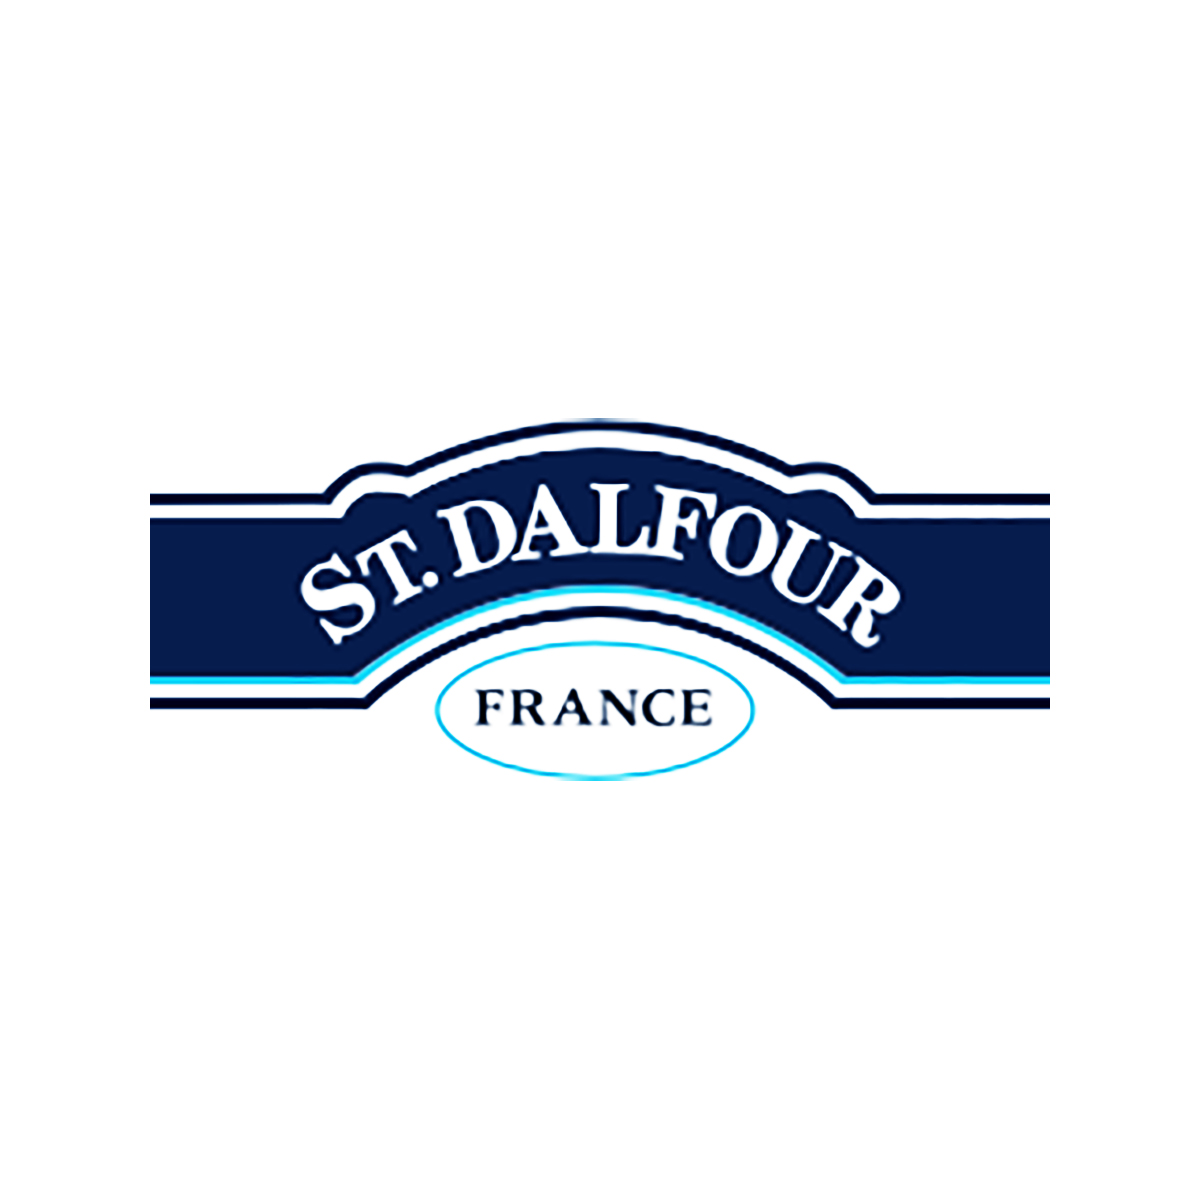 St. Dalfour